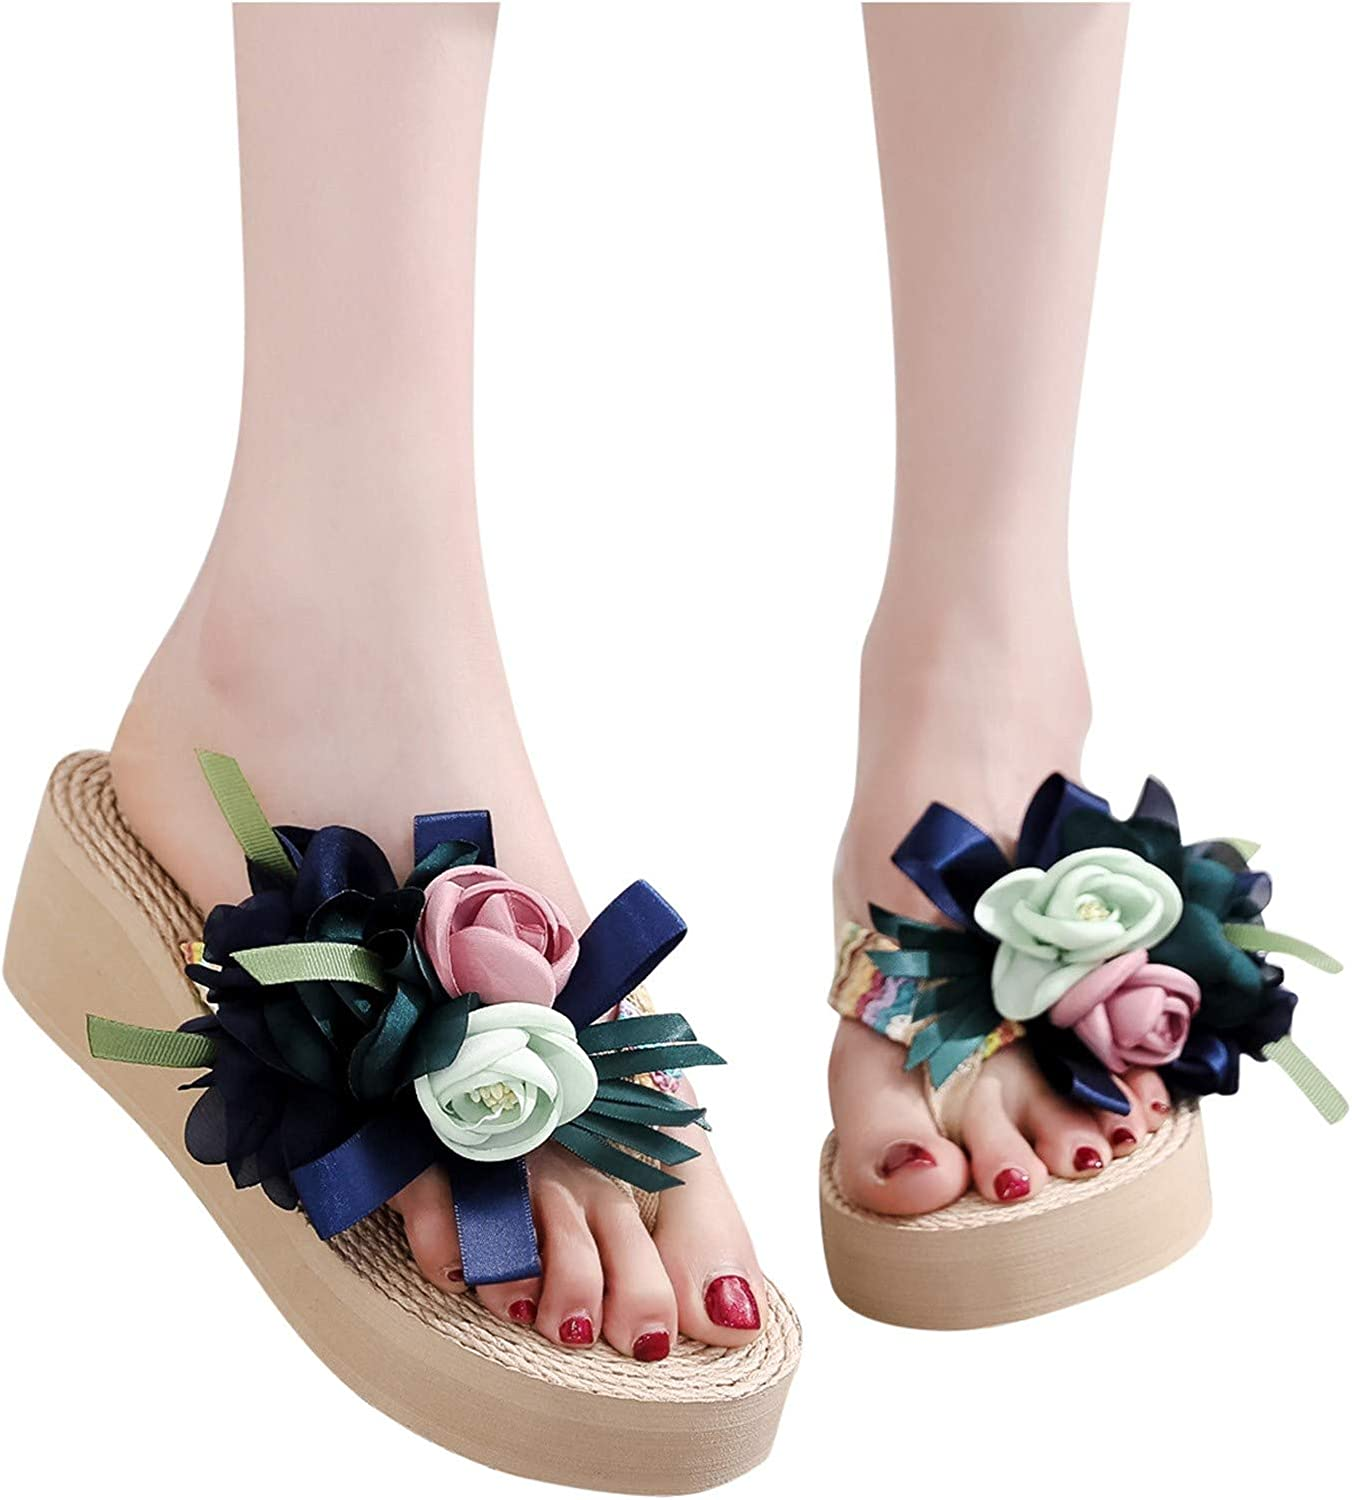 Hgndbloo Casual Floral Max 51% OFF Slippers for Flip Beach Sales for sale Summer Flop Women